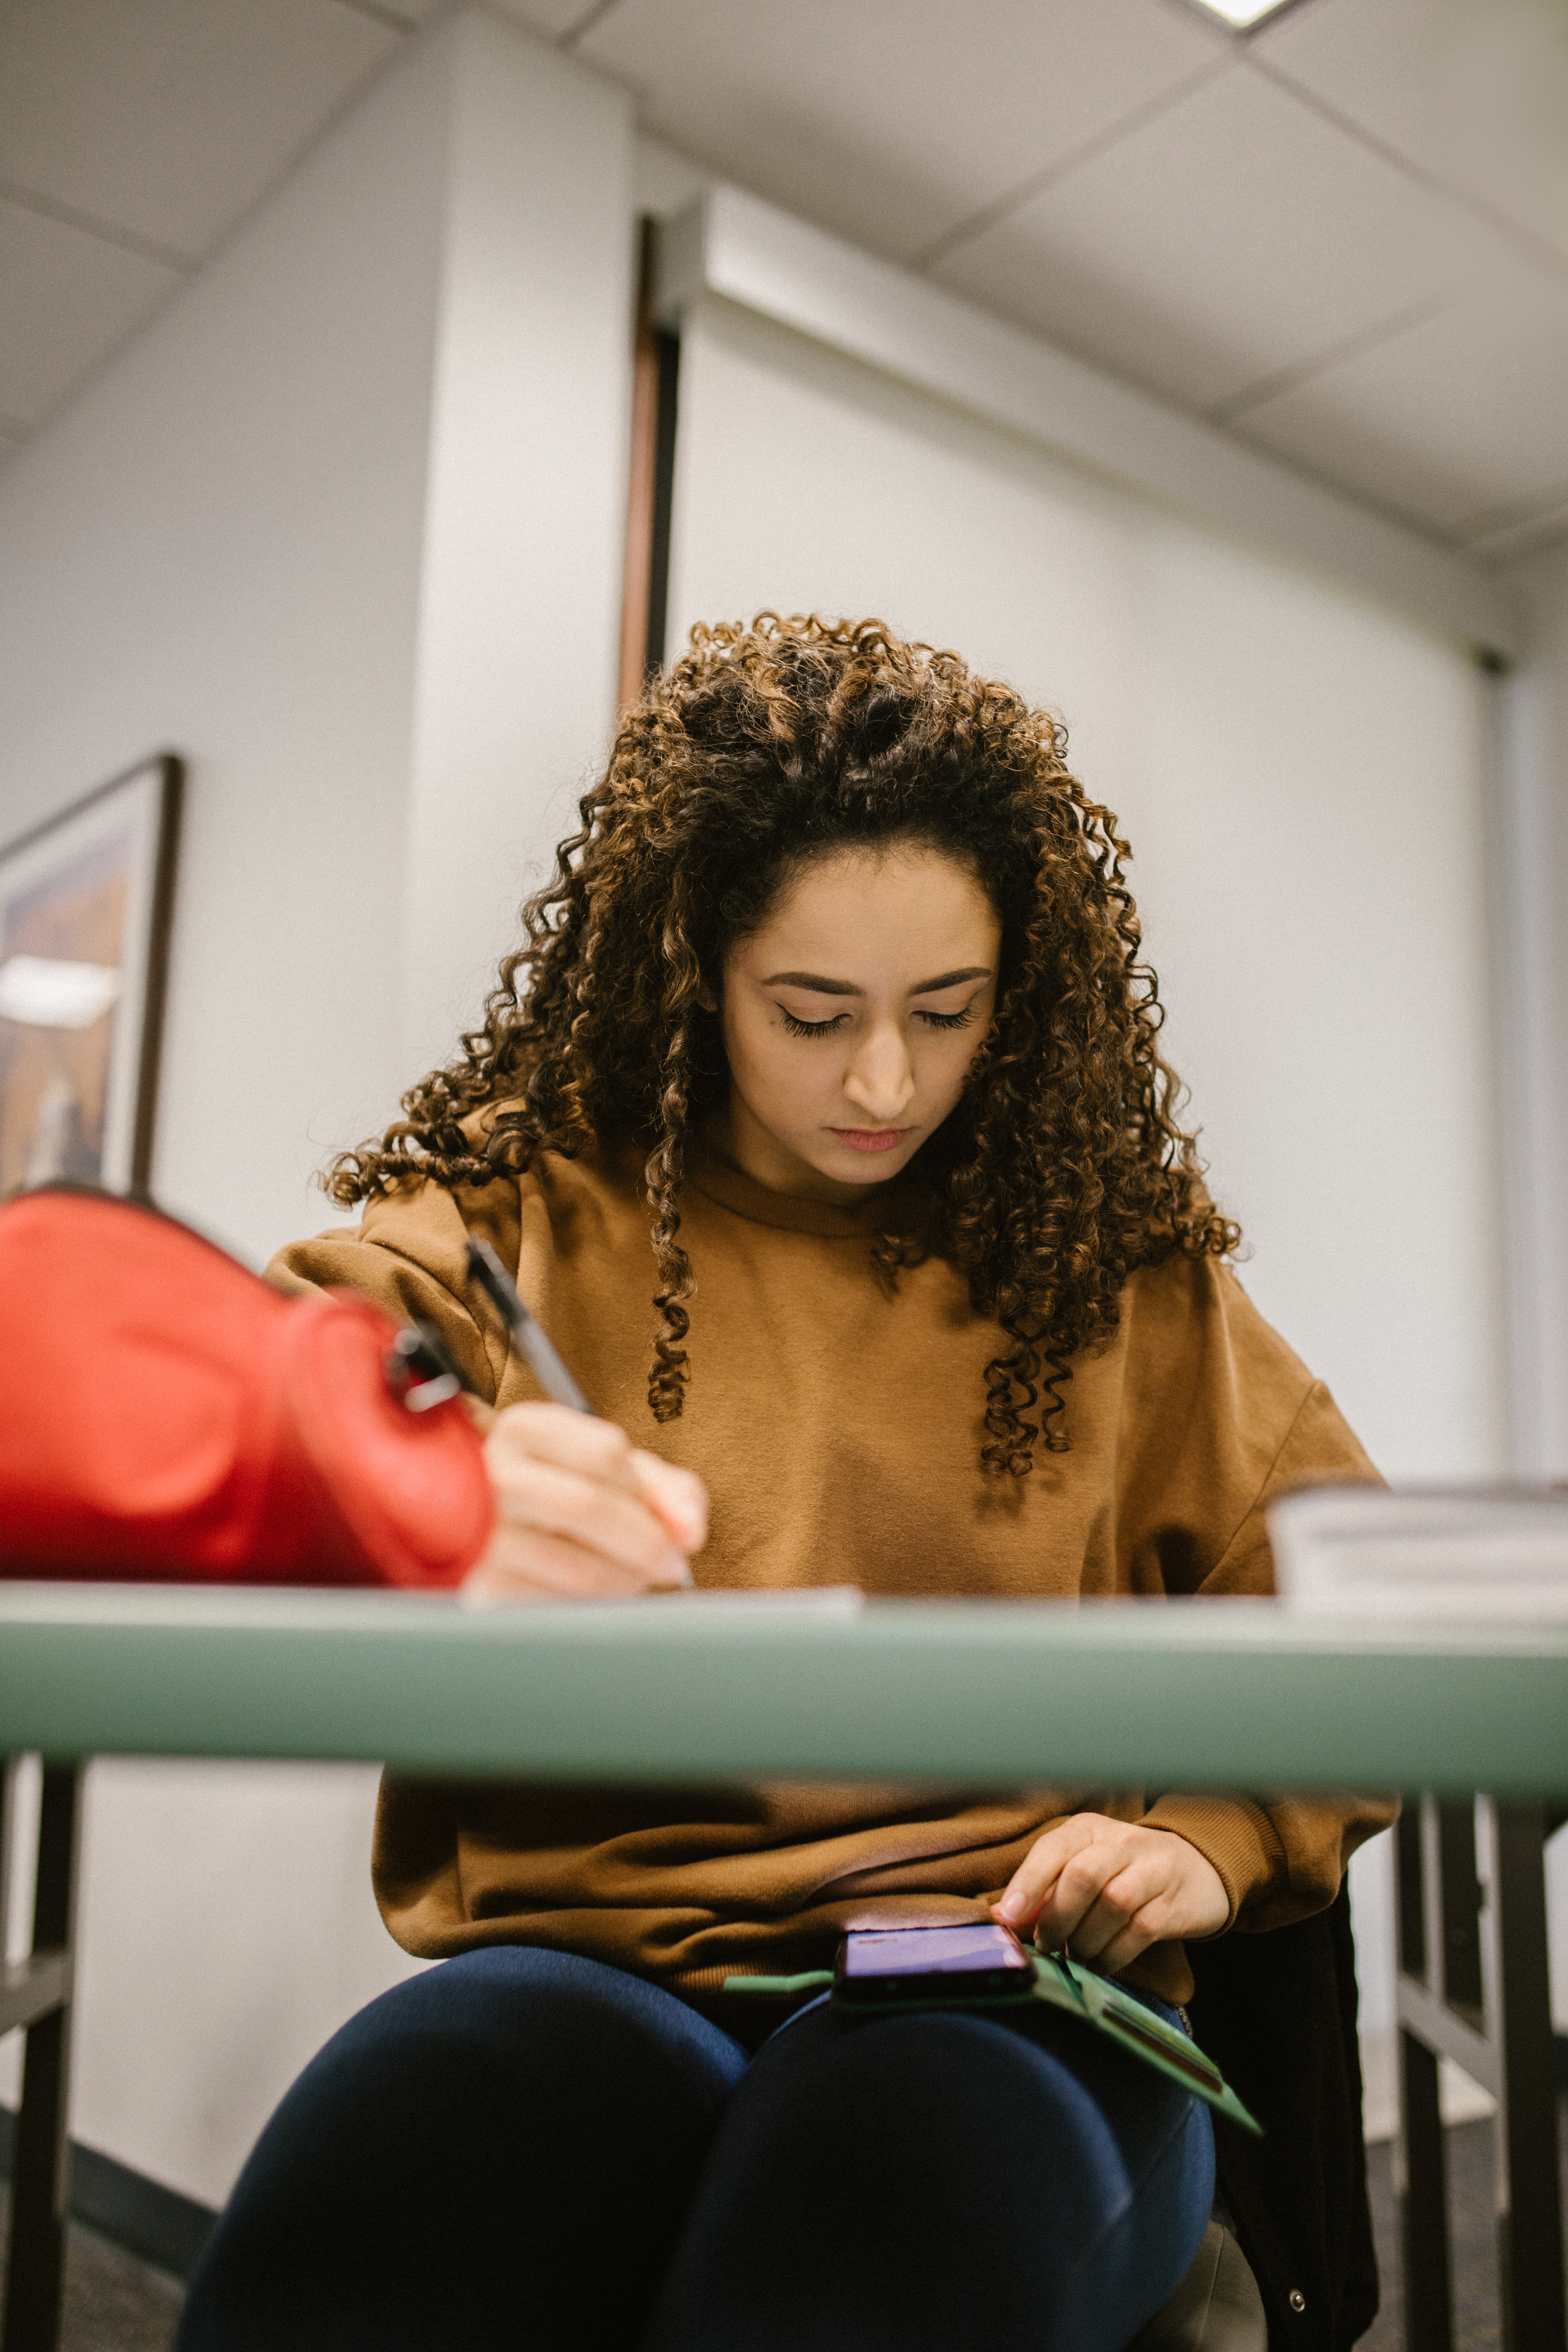 student cheating during an exam